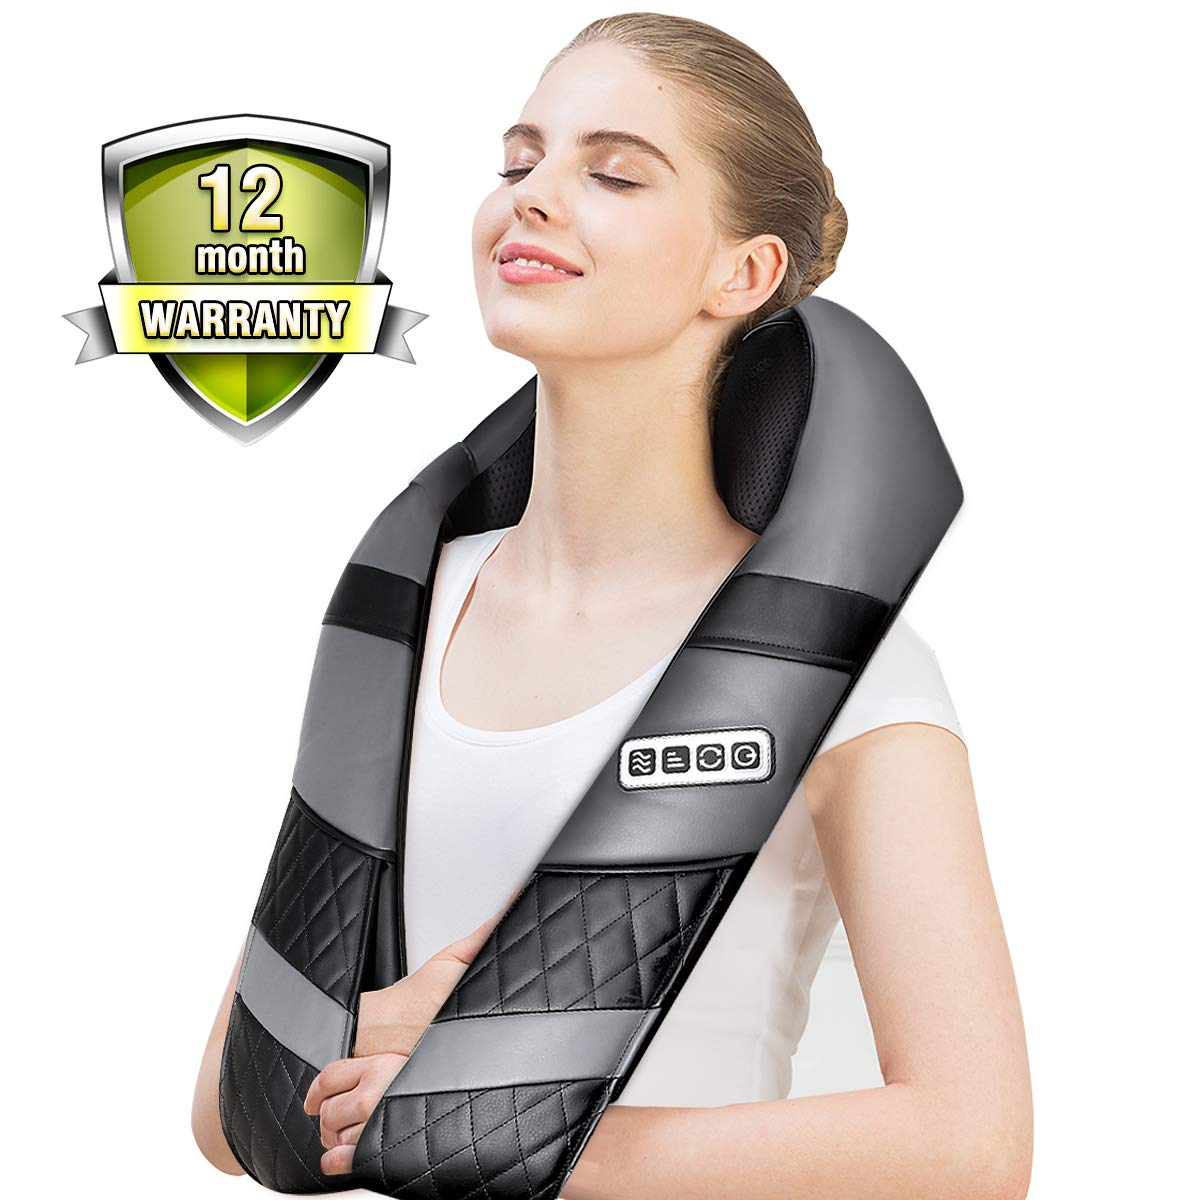 Shiatsu Back Shoulder & Neck Massager with Heat - Deep 3D Kneading Massage Shawl for Neck Shoulder Back Waist Hips Legs& Foot Whole Body, Relieve Muscle Pains Soreness and Tensions at Home&Office by ishantech